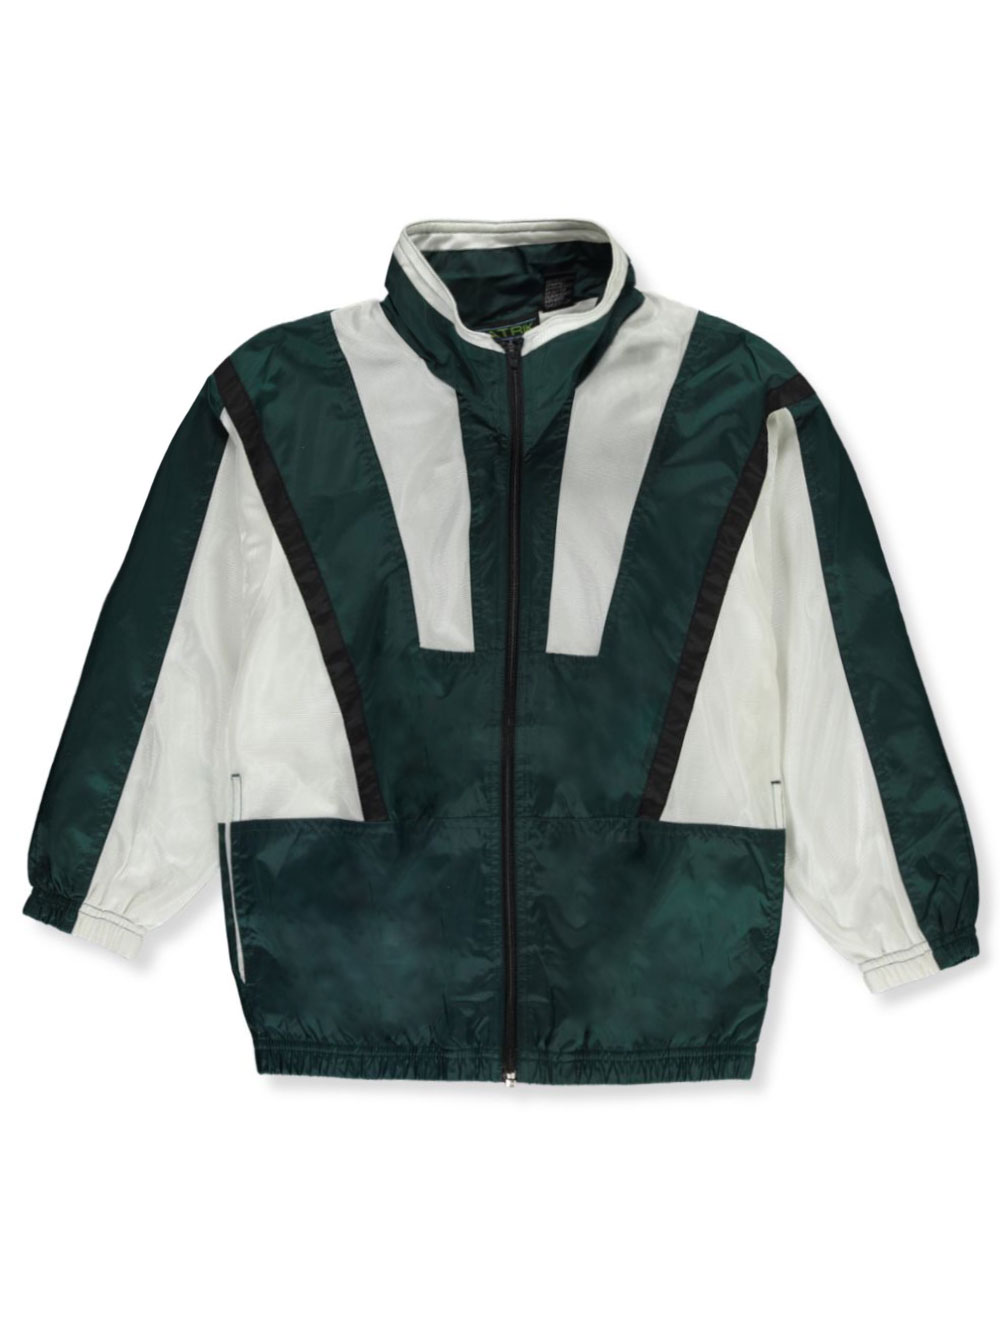 Hunter Green Jackets